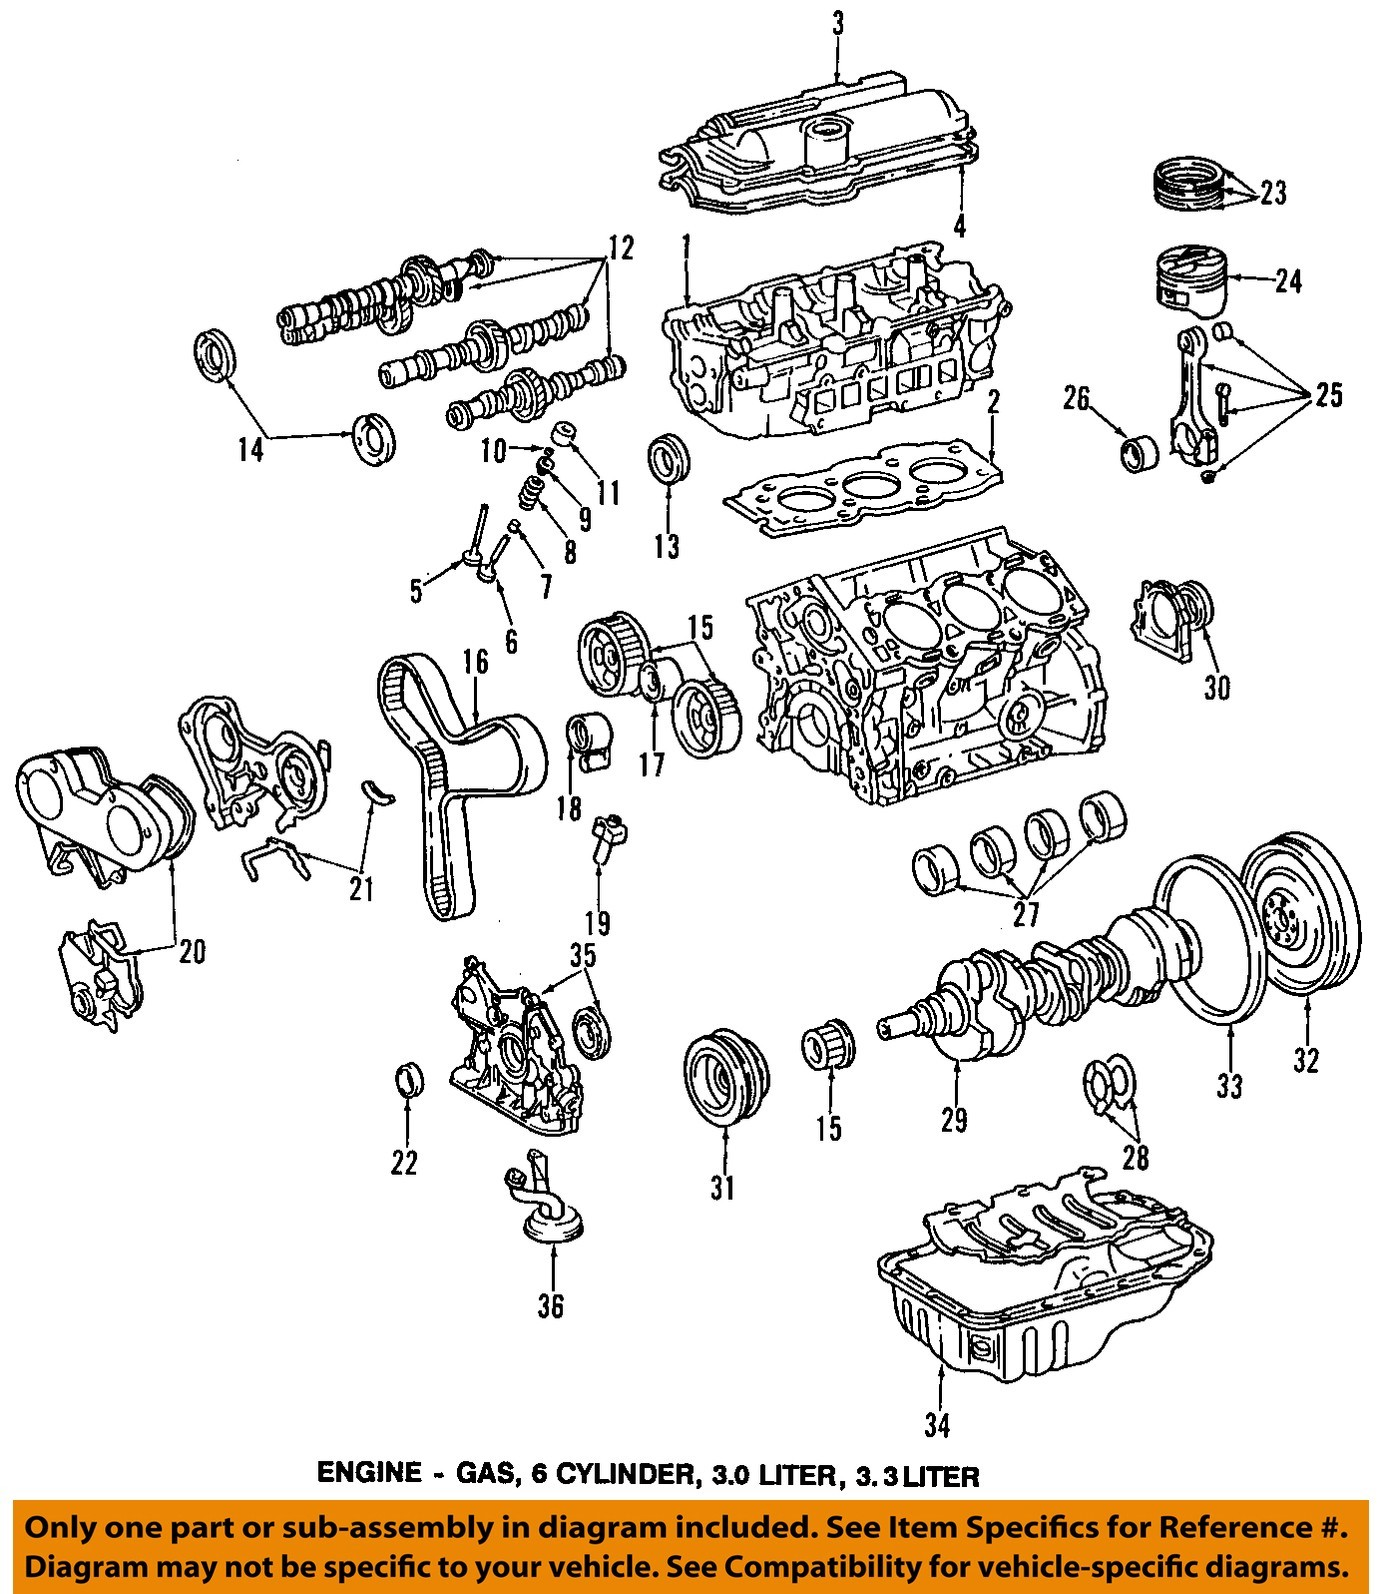 1999 toyota camry exhaust system diagram sony xplod xm 5040x 1997 parts  wiring for free